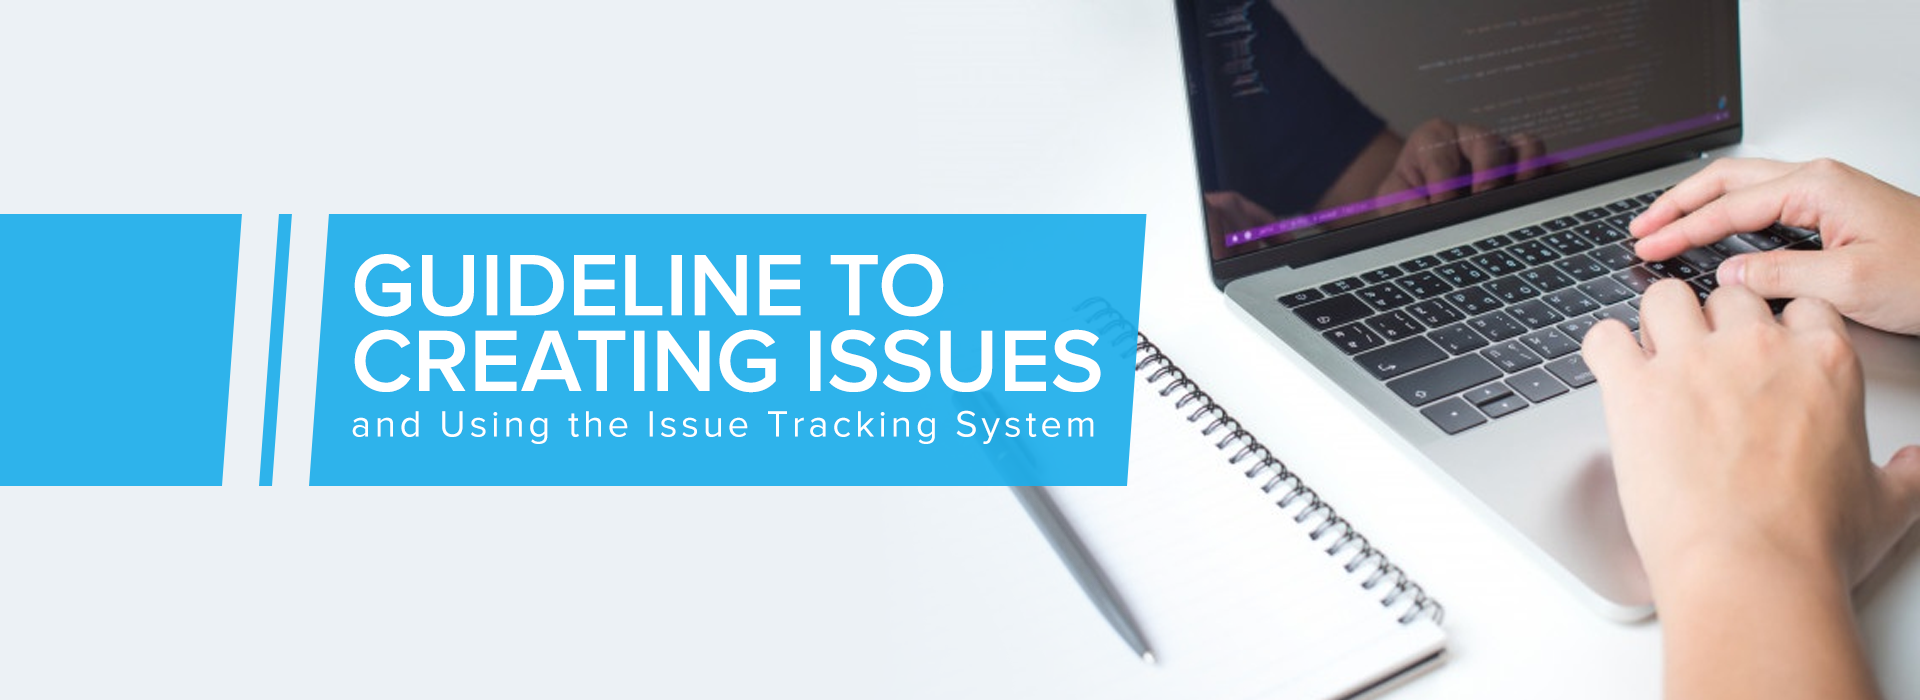 Guideline-to-creating-issues-and-using-the-issue-tracking-system_